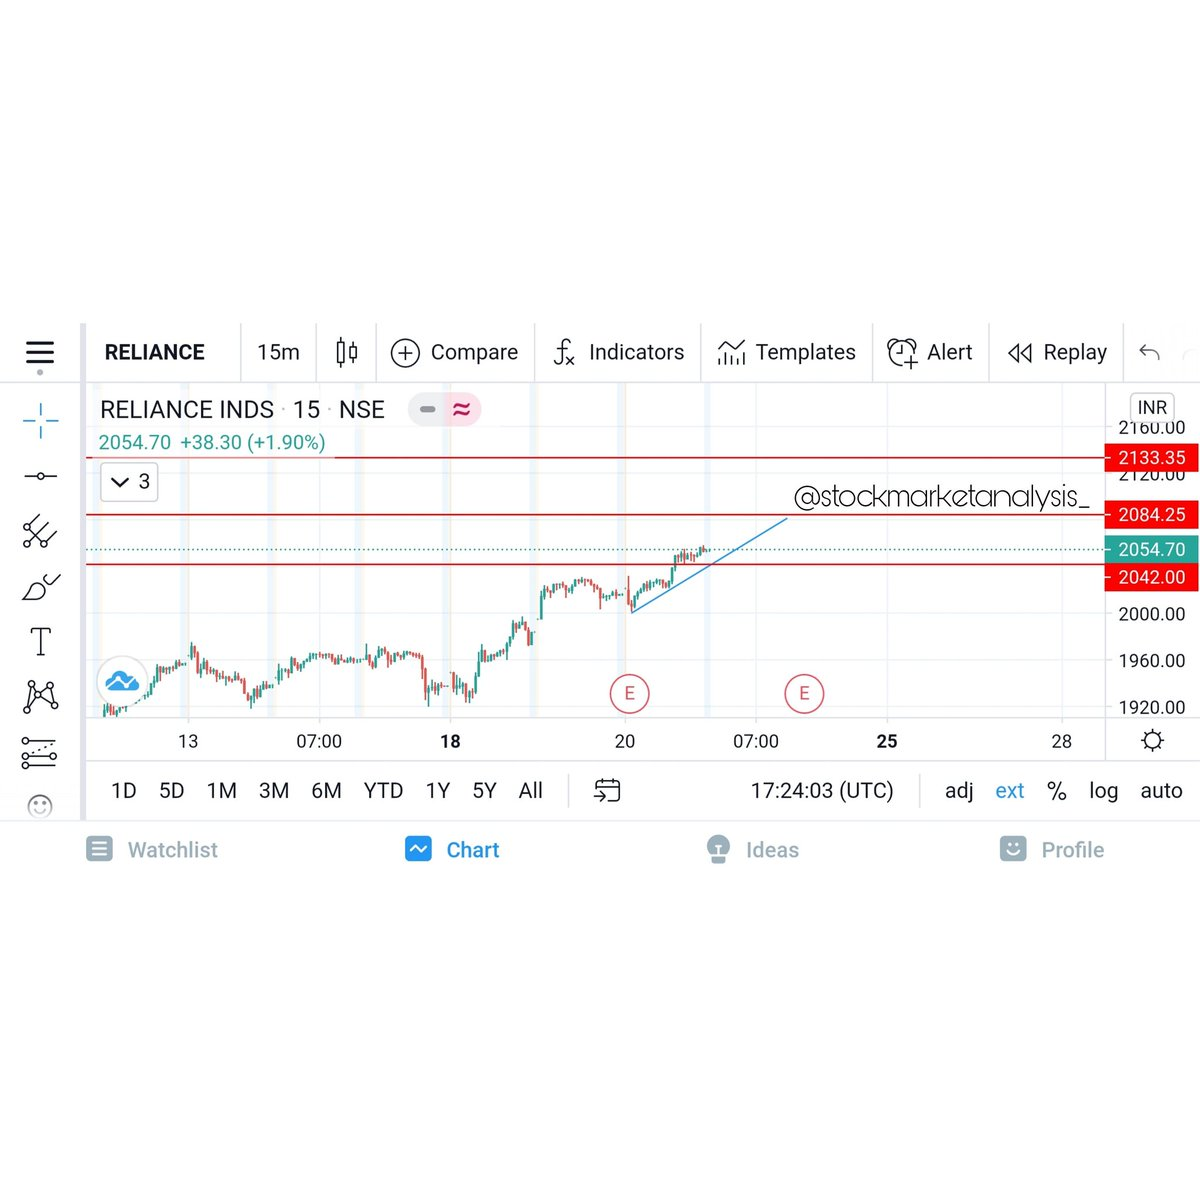 //INTRADAY STOCK FOR TOMORROW//  Stock - RELIANCE Date - 21st January 2021  #sharemarket #stockmarket #nifty #indianstockmarket #investing #sensex #investment #trading #stockmarketnews #nse #stocks #bse #finance #banknifty #stockmarketindia #money #intradaytrading #intraday #nse